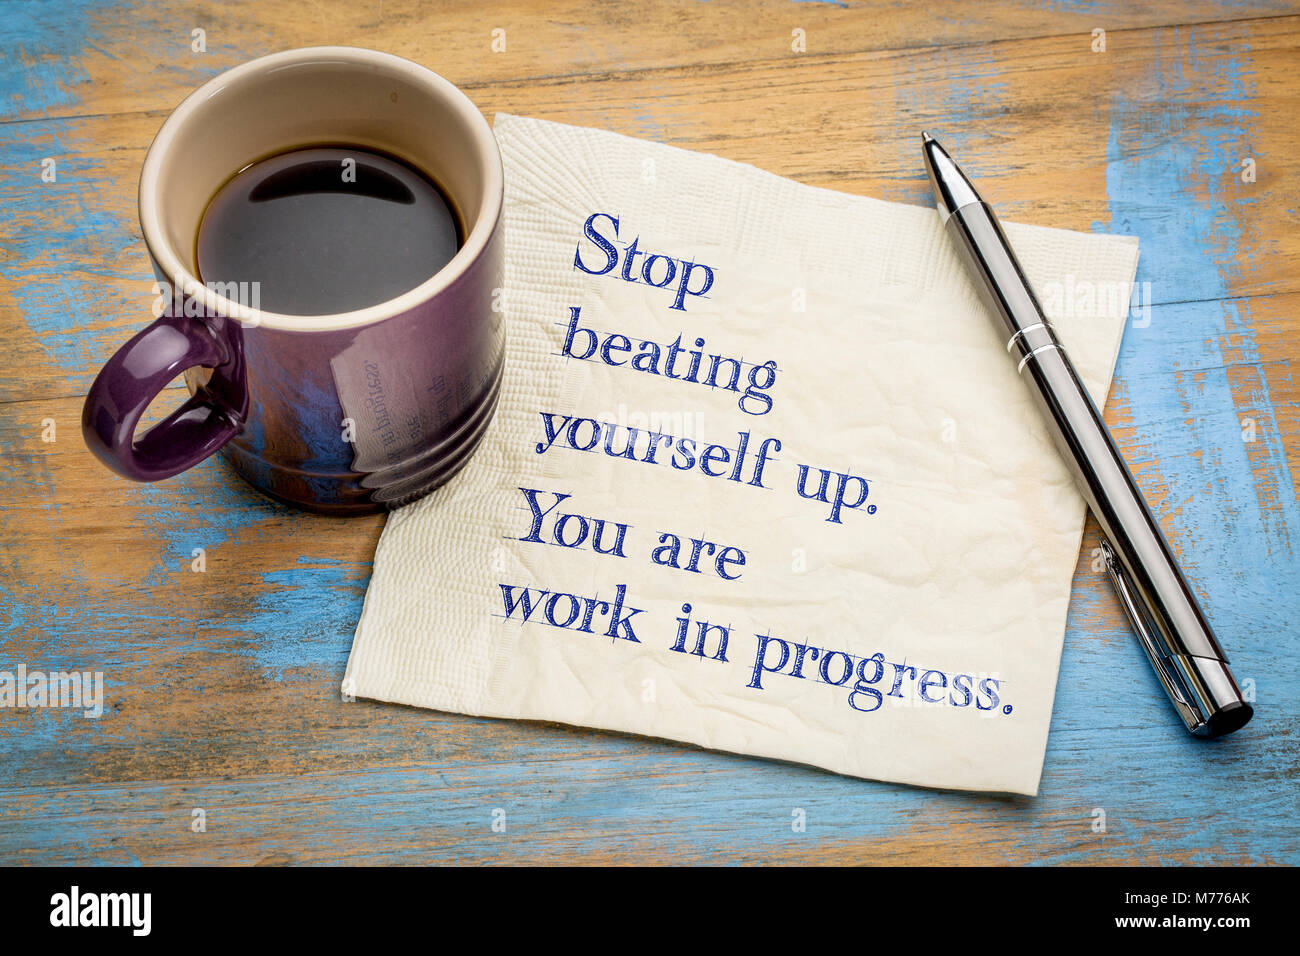 Stop beating yourself up. You are work in progress.  Handwriting on a napkin with a cup of coffee - Stock Image